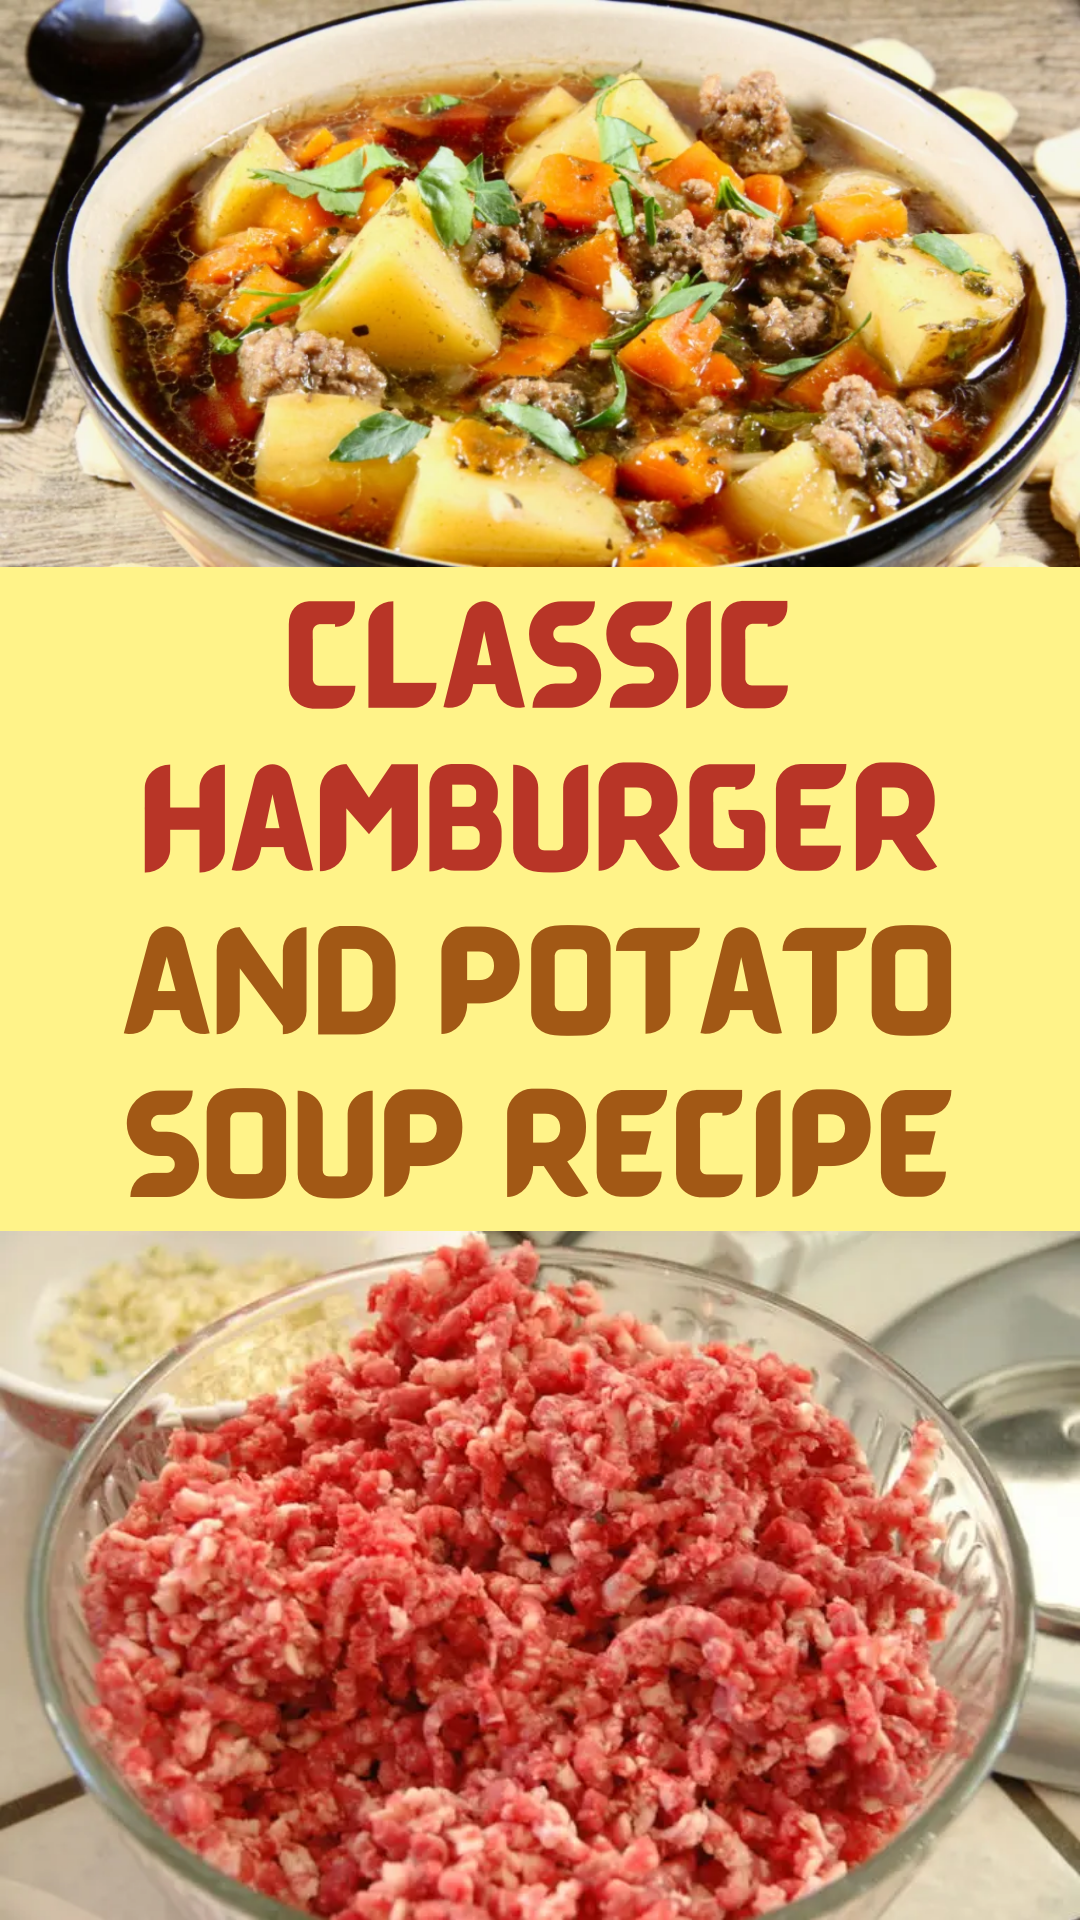 Classic Hamburger And Potato Soup Recipe